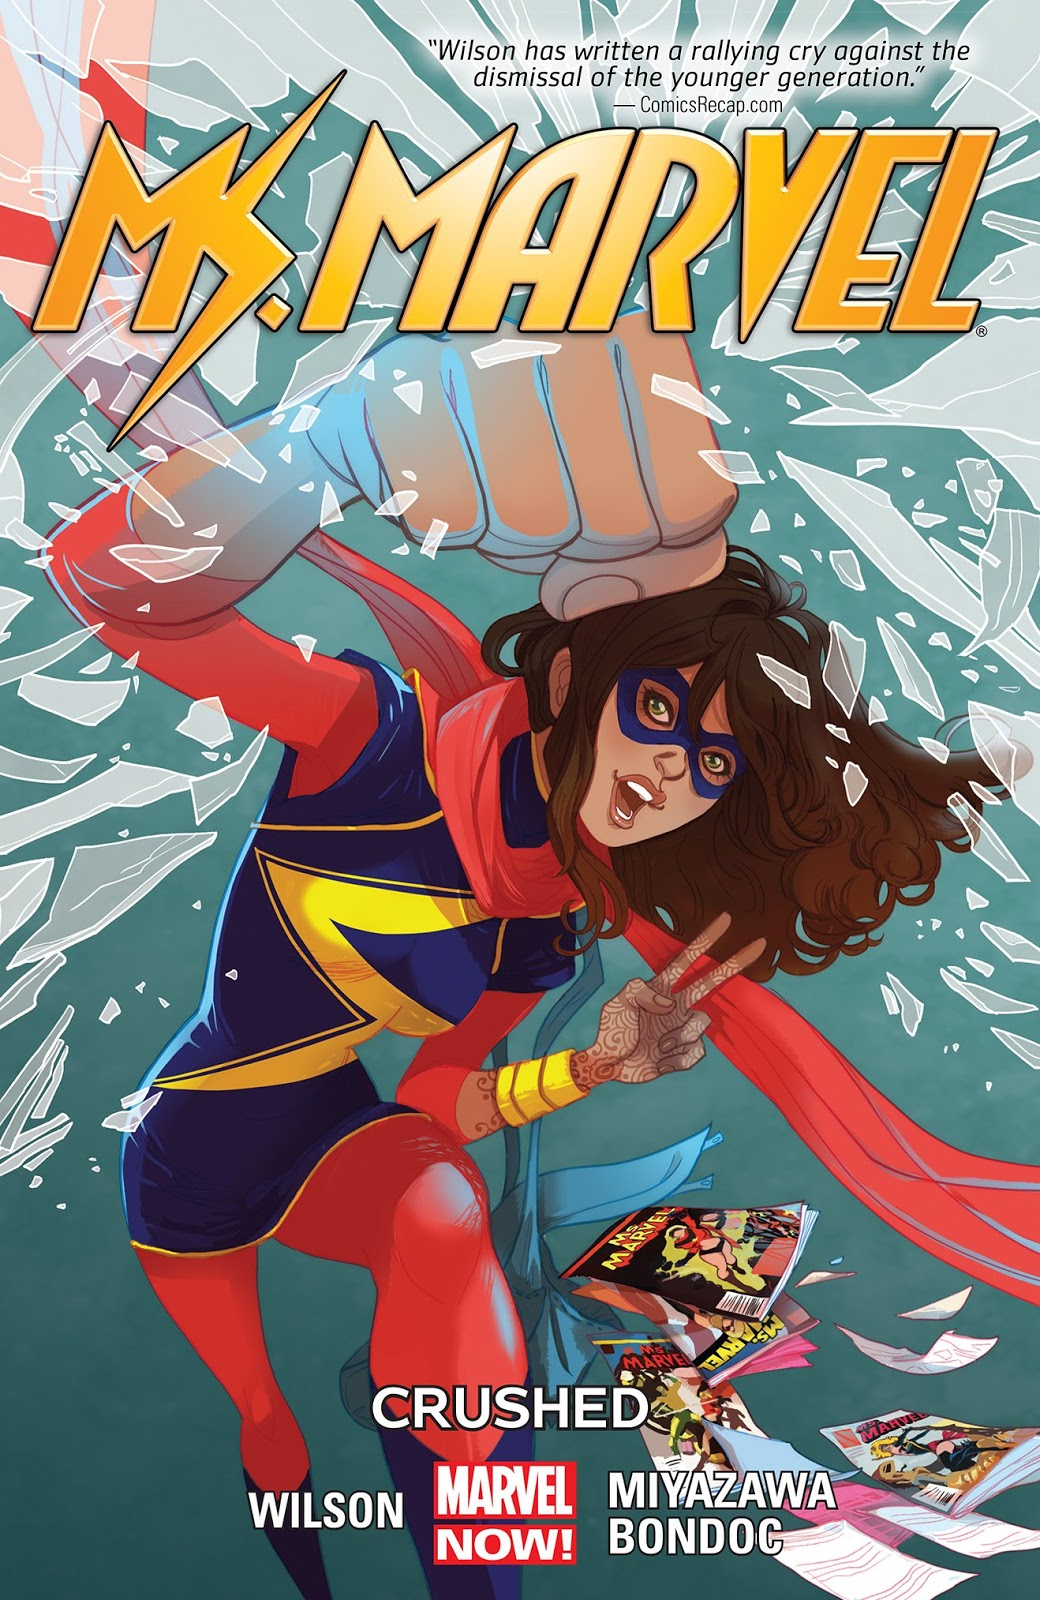 Ms Marvel Vol 3: Crushed By G Willow Wilson